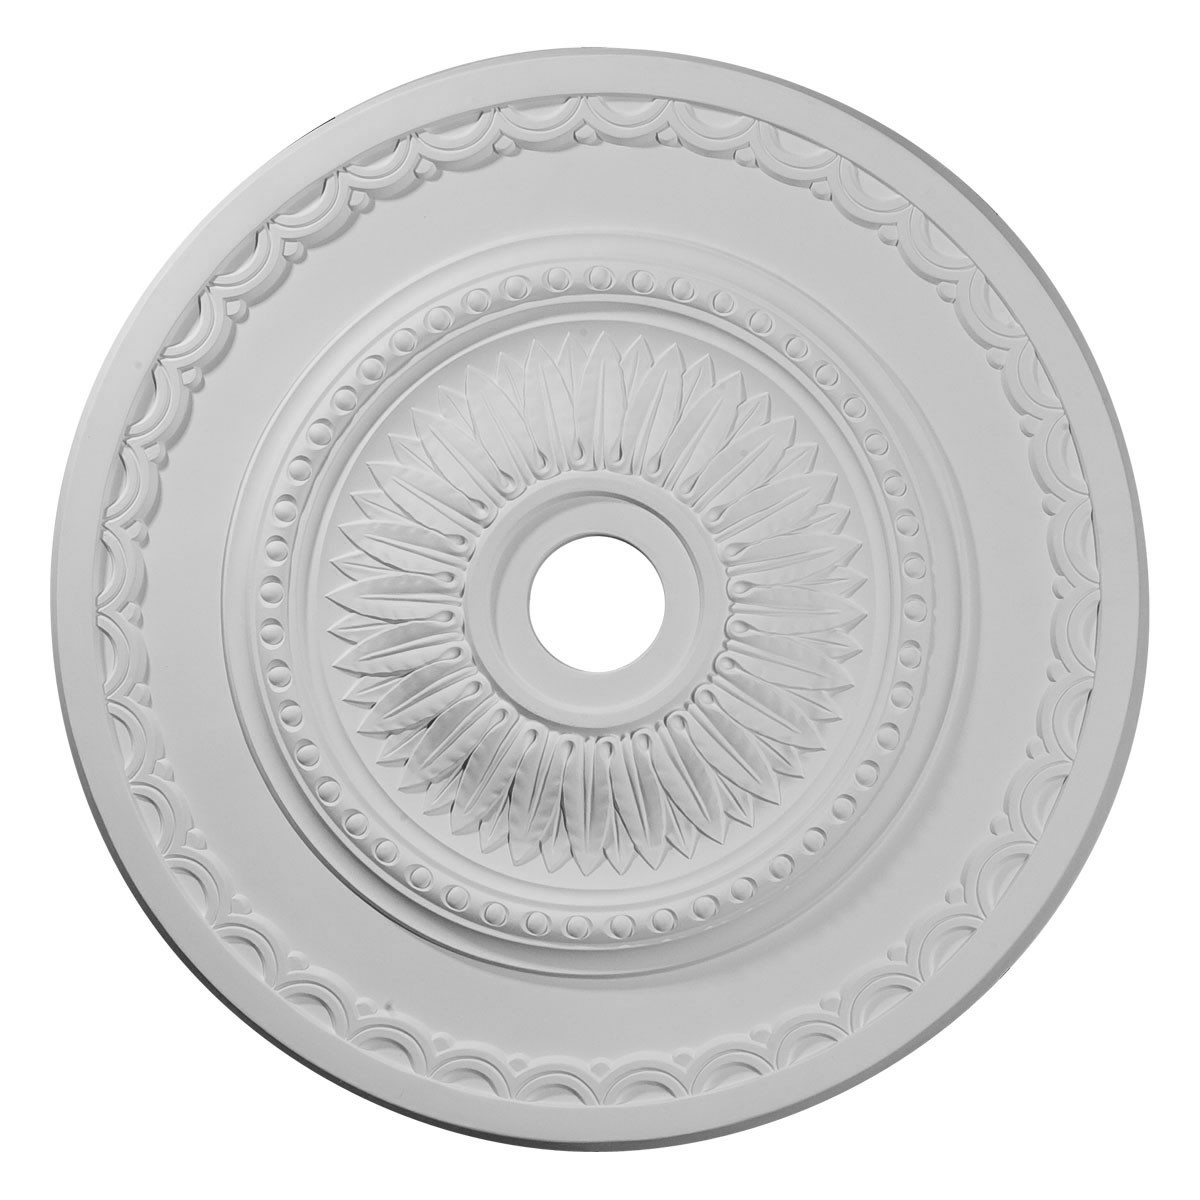 """EM-CM29SF - 29 1/2""""OD x 3 5/8""""ID x 1 5/8""""P Sunflower Ceiling Medallion (Fits Canopies up to 5 5/8"""")"""